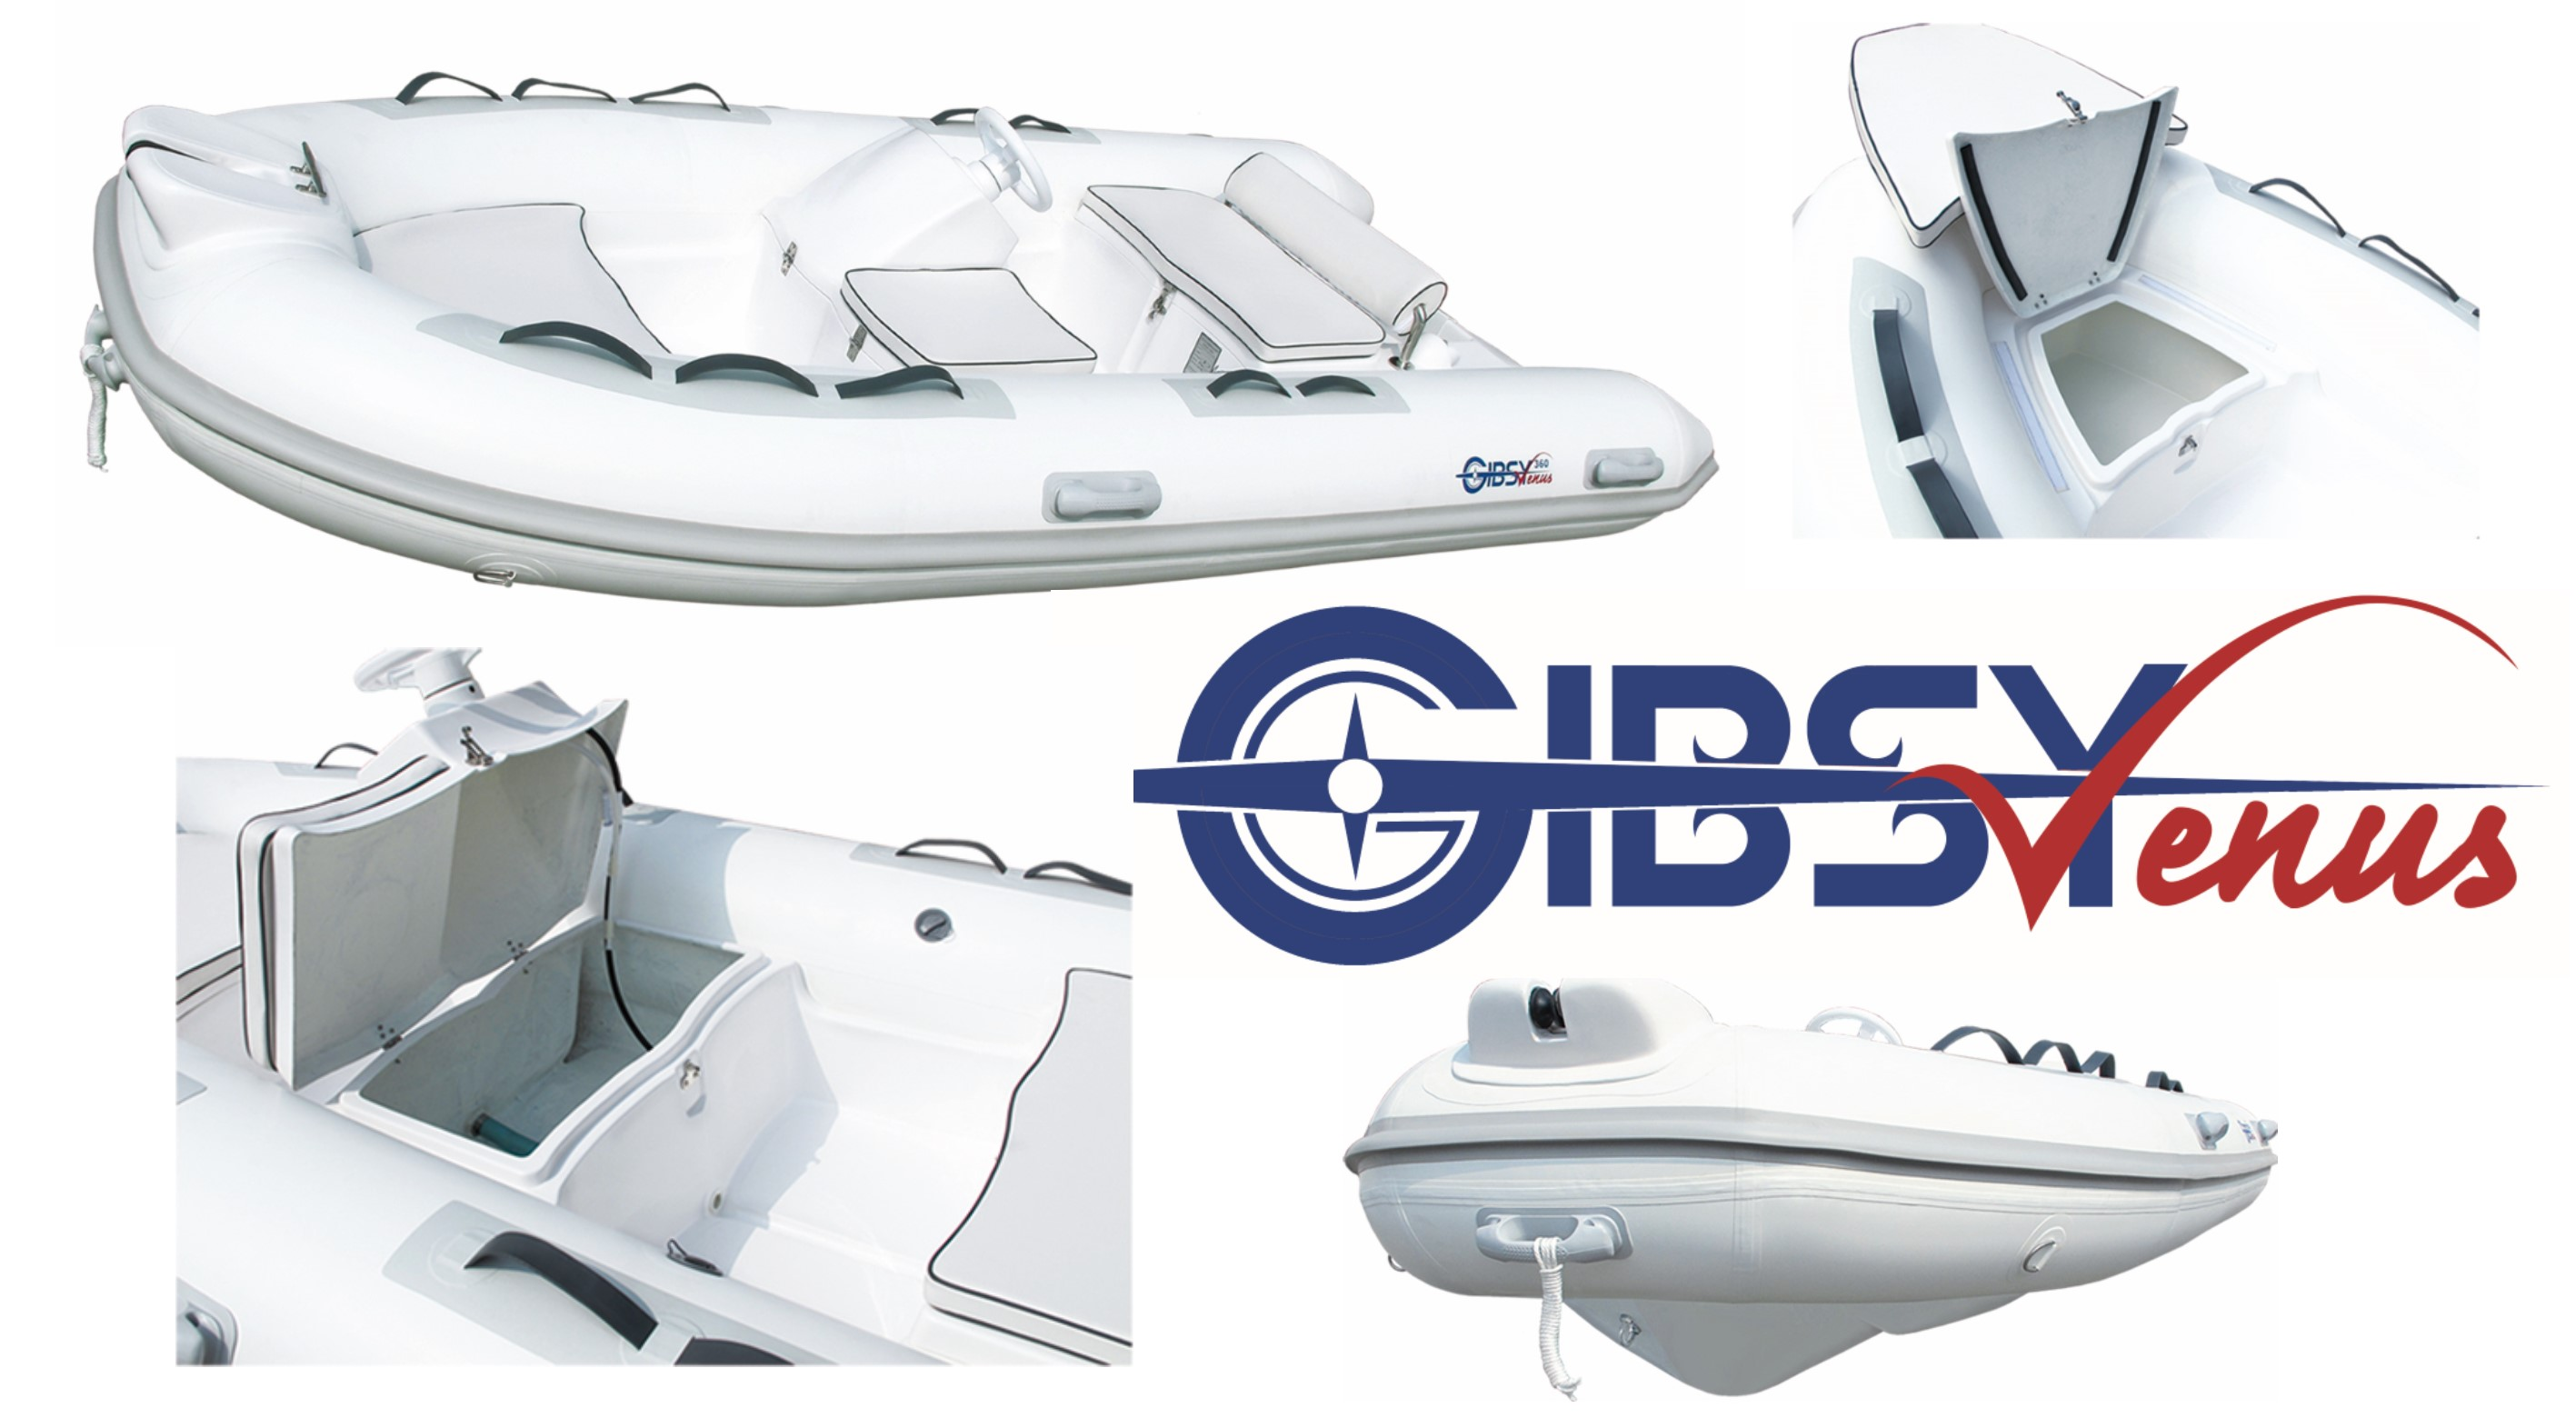 Gibsy 290 - 320 - 360 VENUS inflatable boat